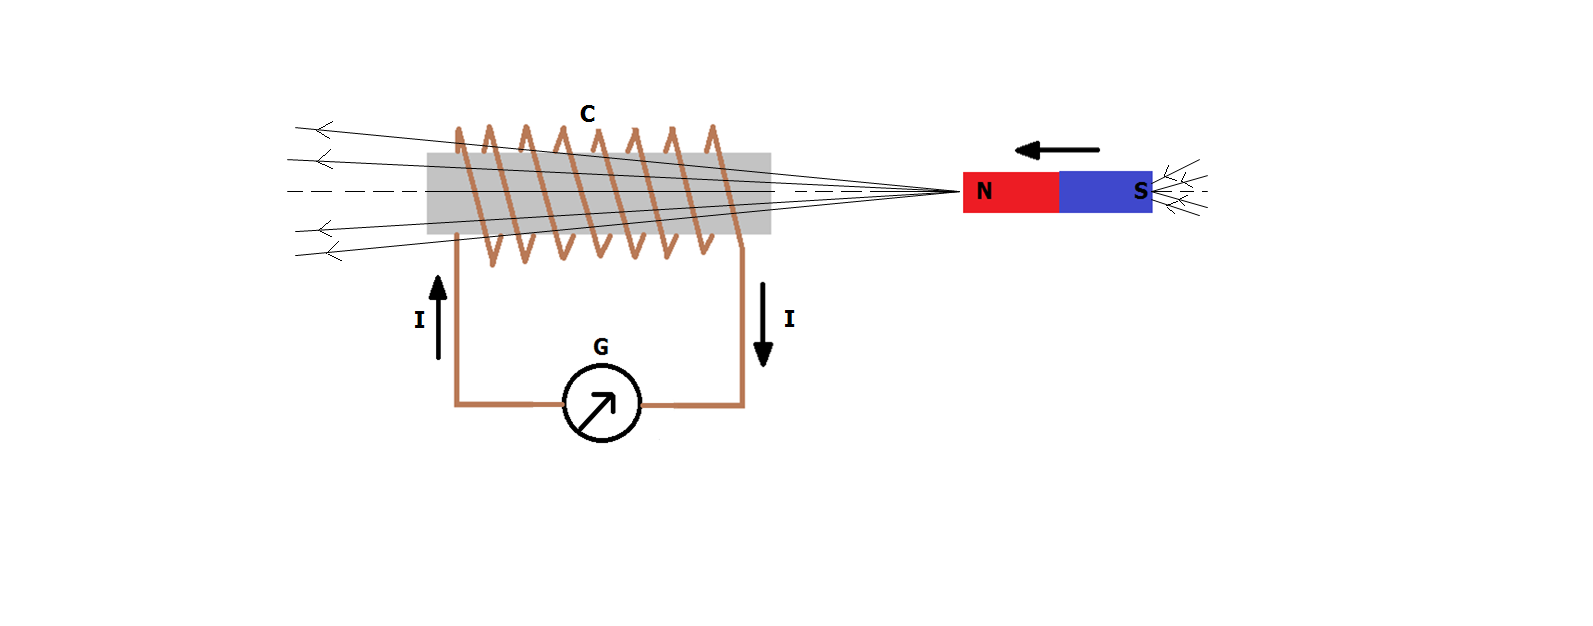 With The Help Of A Diagram Describe How U Can Generate Induced Circuit Figure Shows Coil C Few Turns Conducting Material Insulated From One Another It Is Connected To Sensitive Galvanometer G